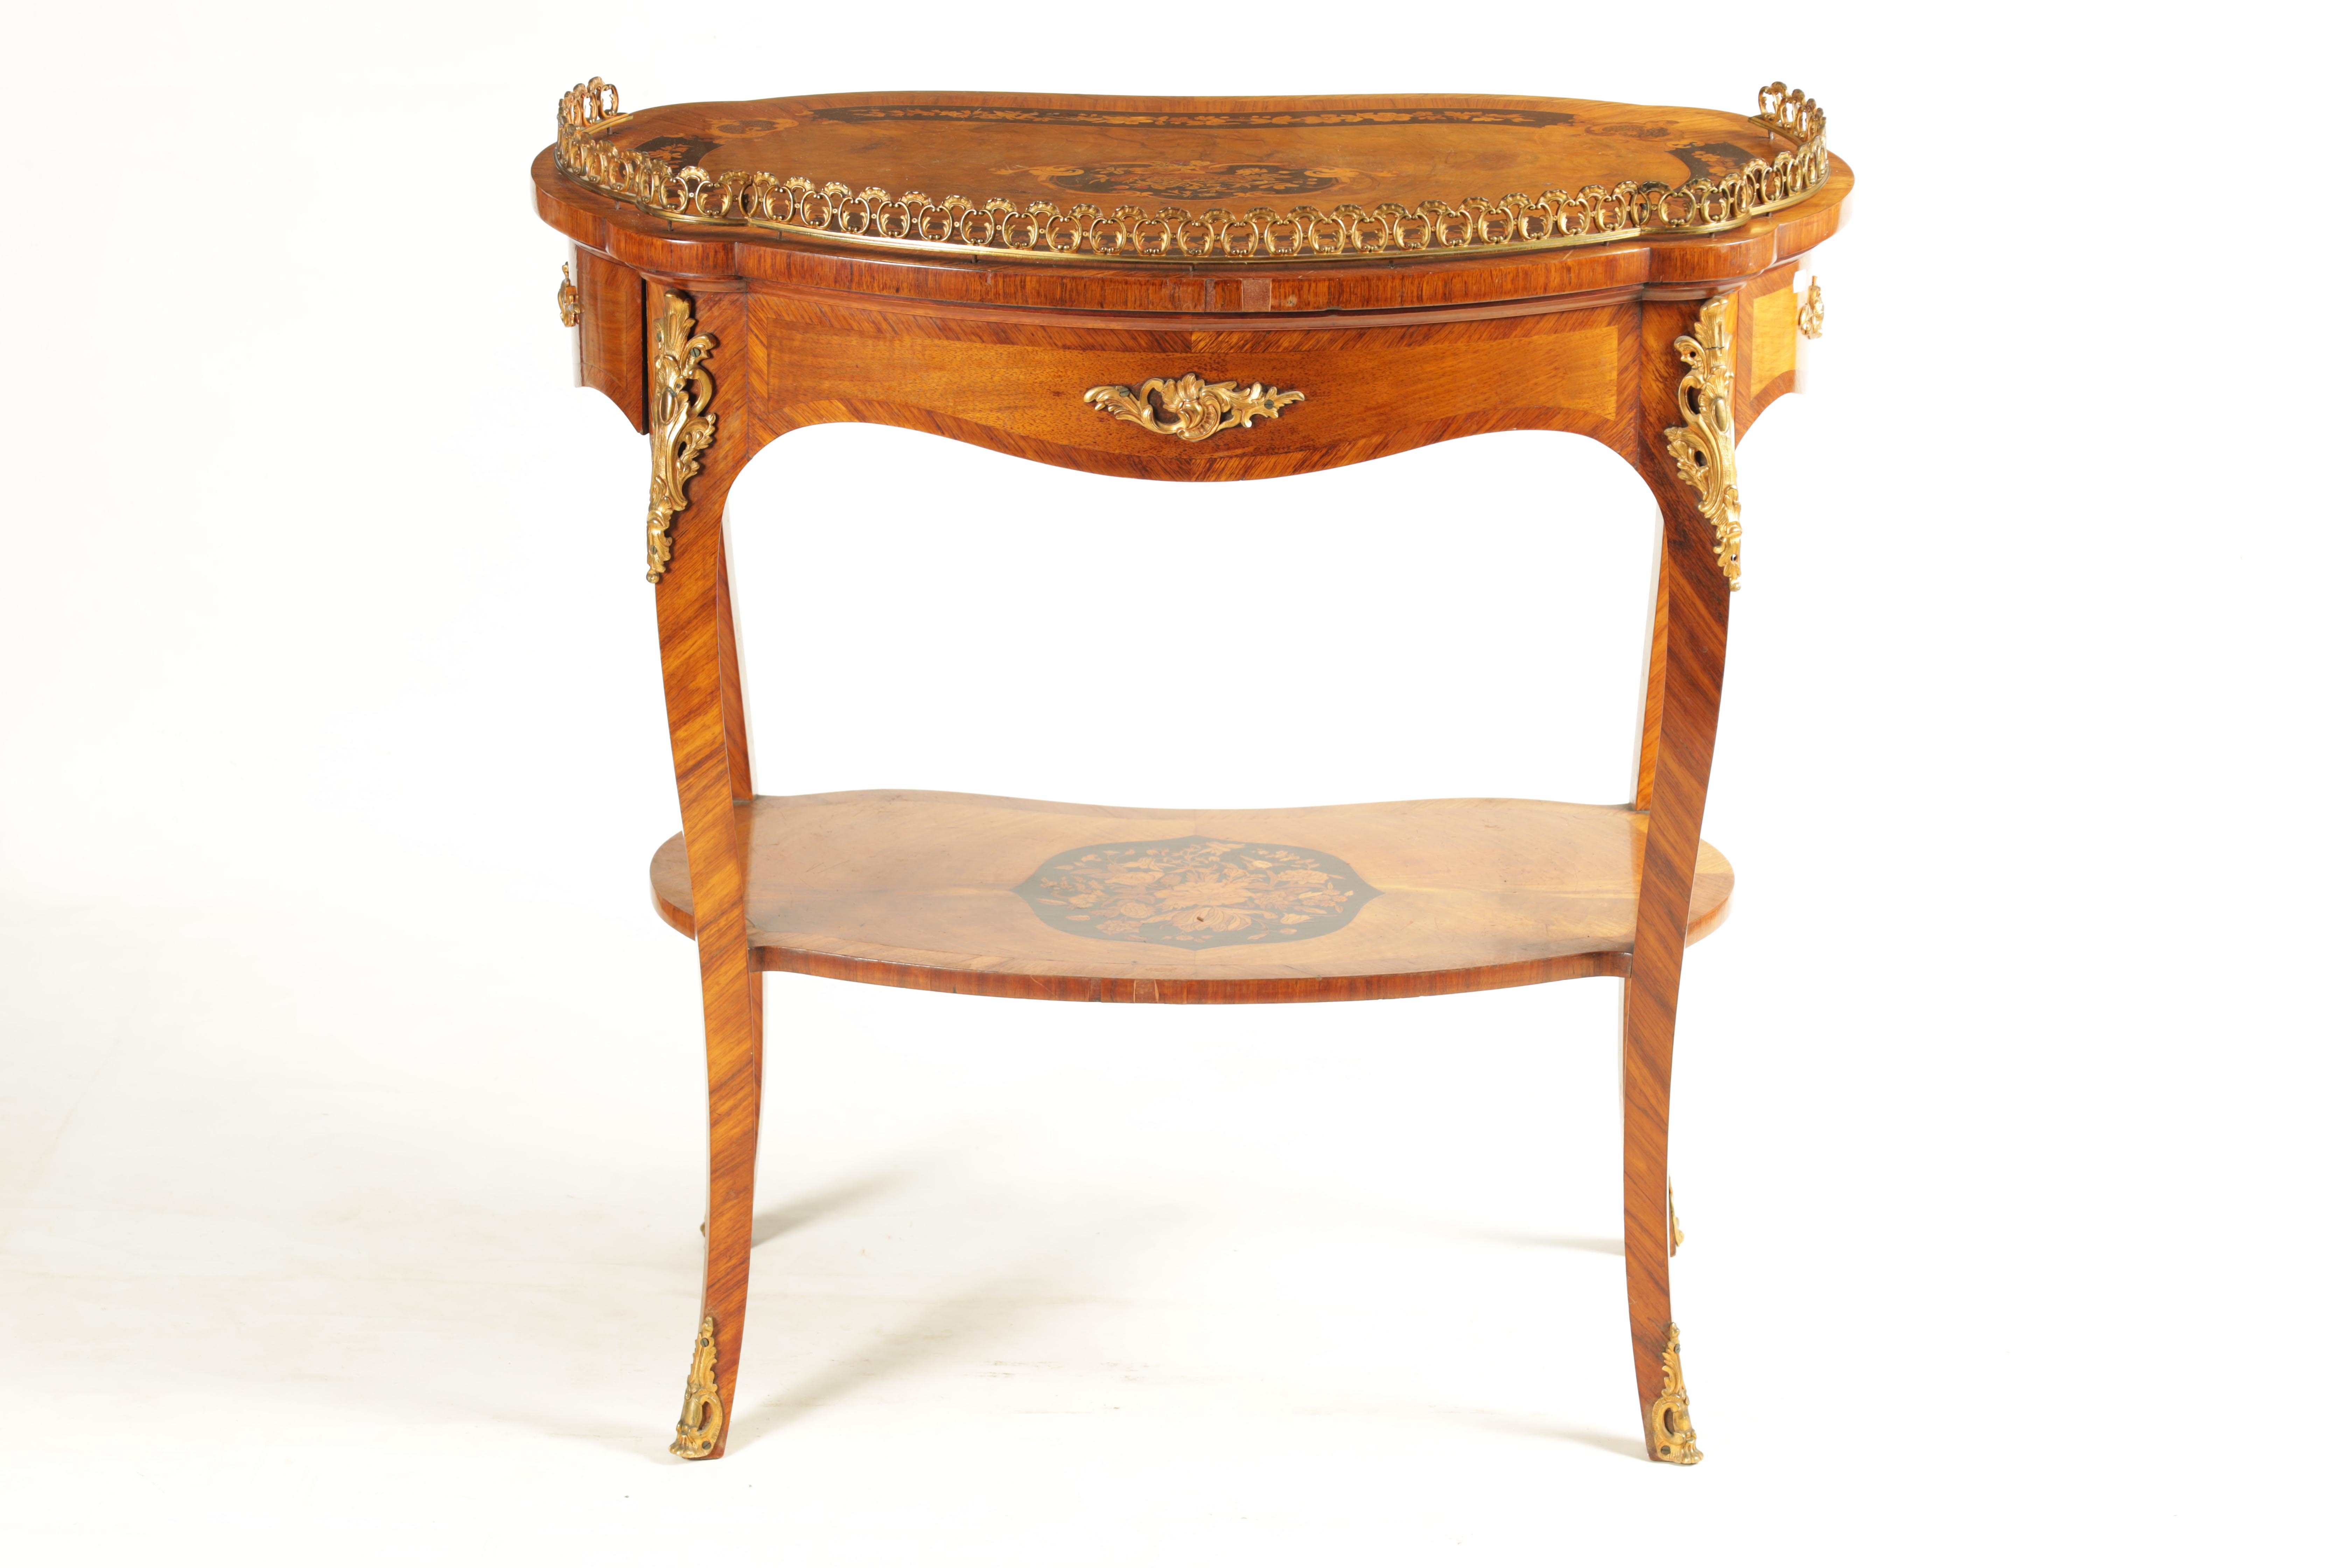 A FINE 19TH CENTURY MARQUETRY INLAID WALNUT KIDNEY SHAPED WRITING TABLE with raised brass - Image 10 of 10